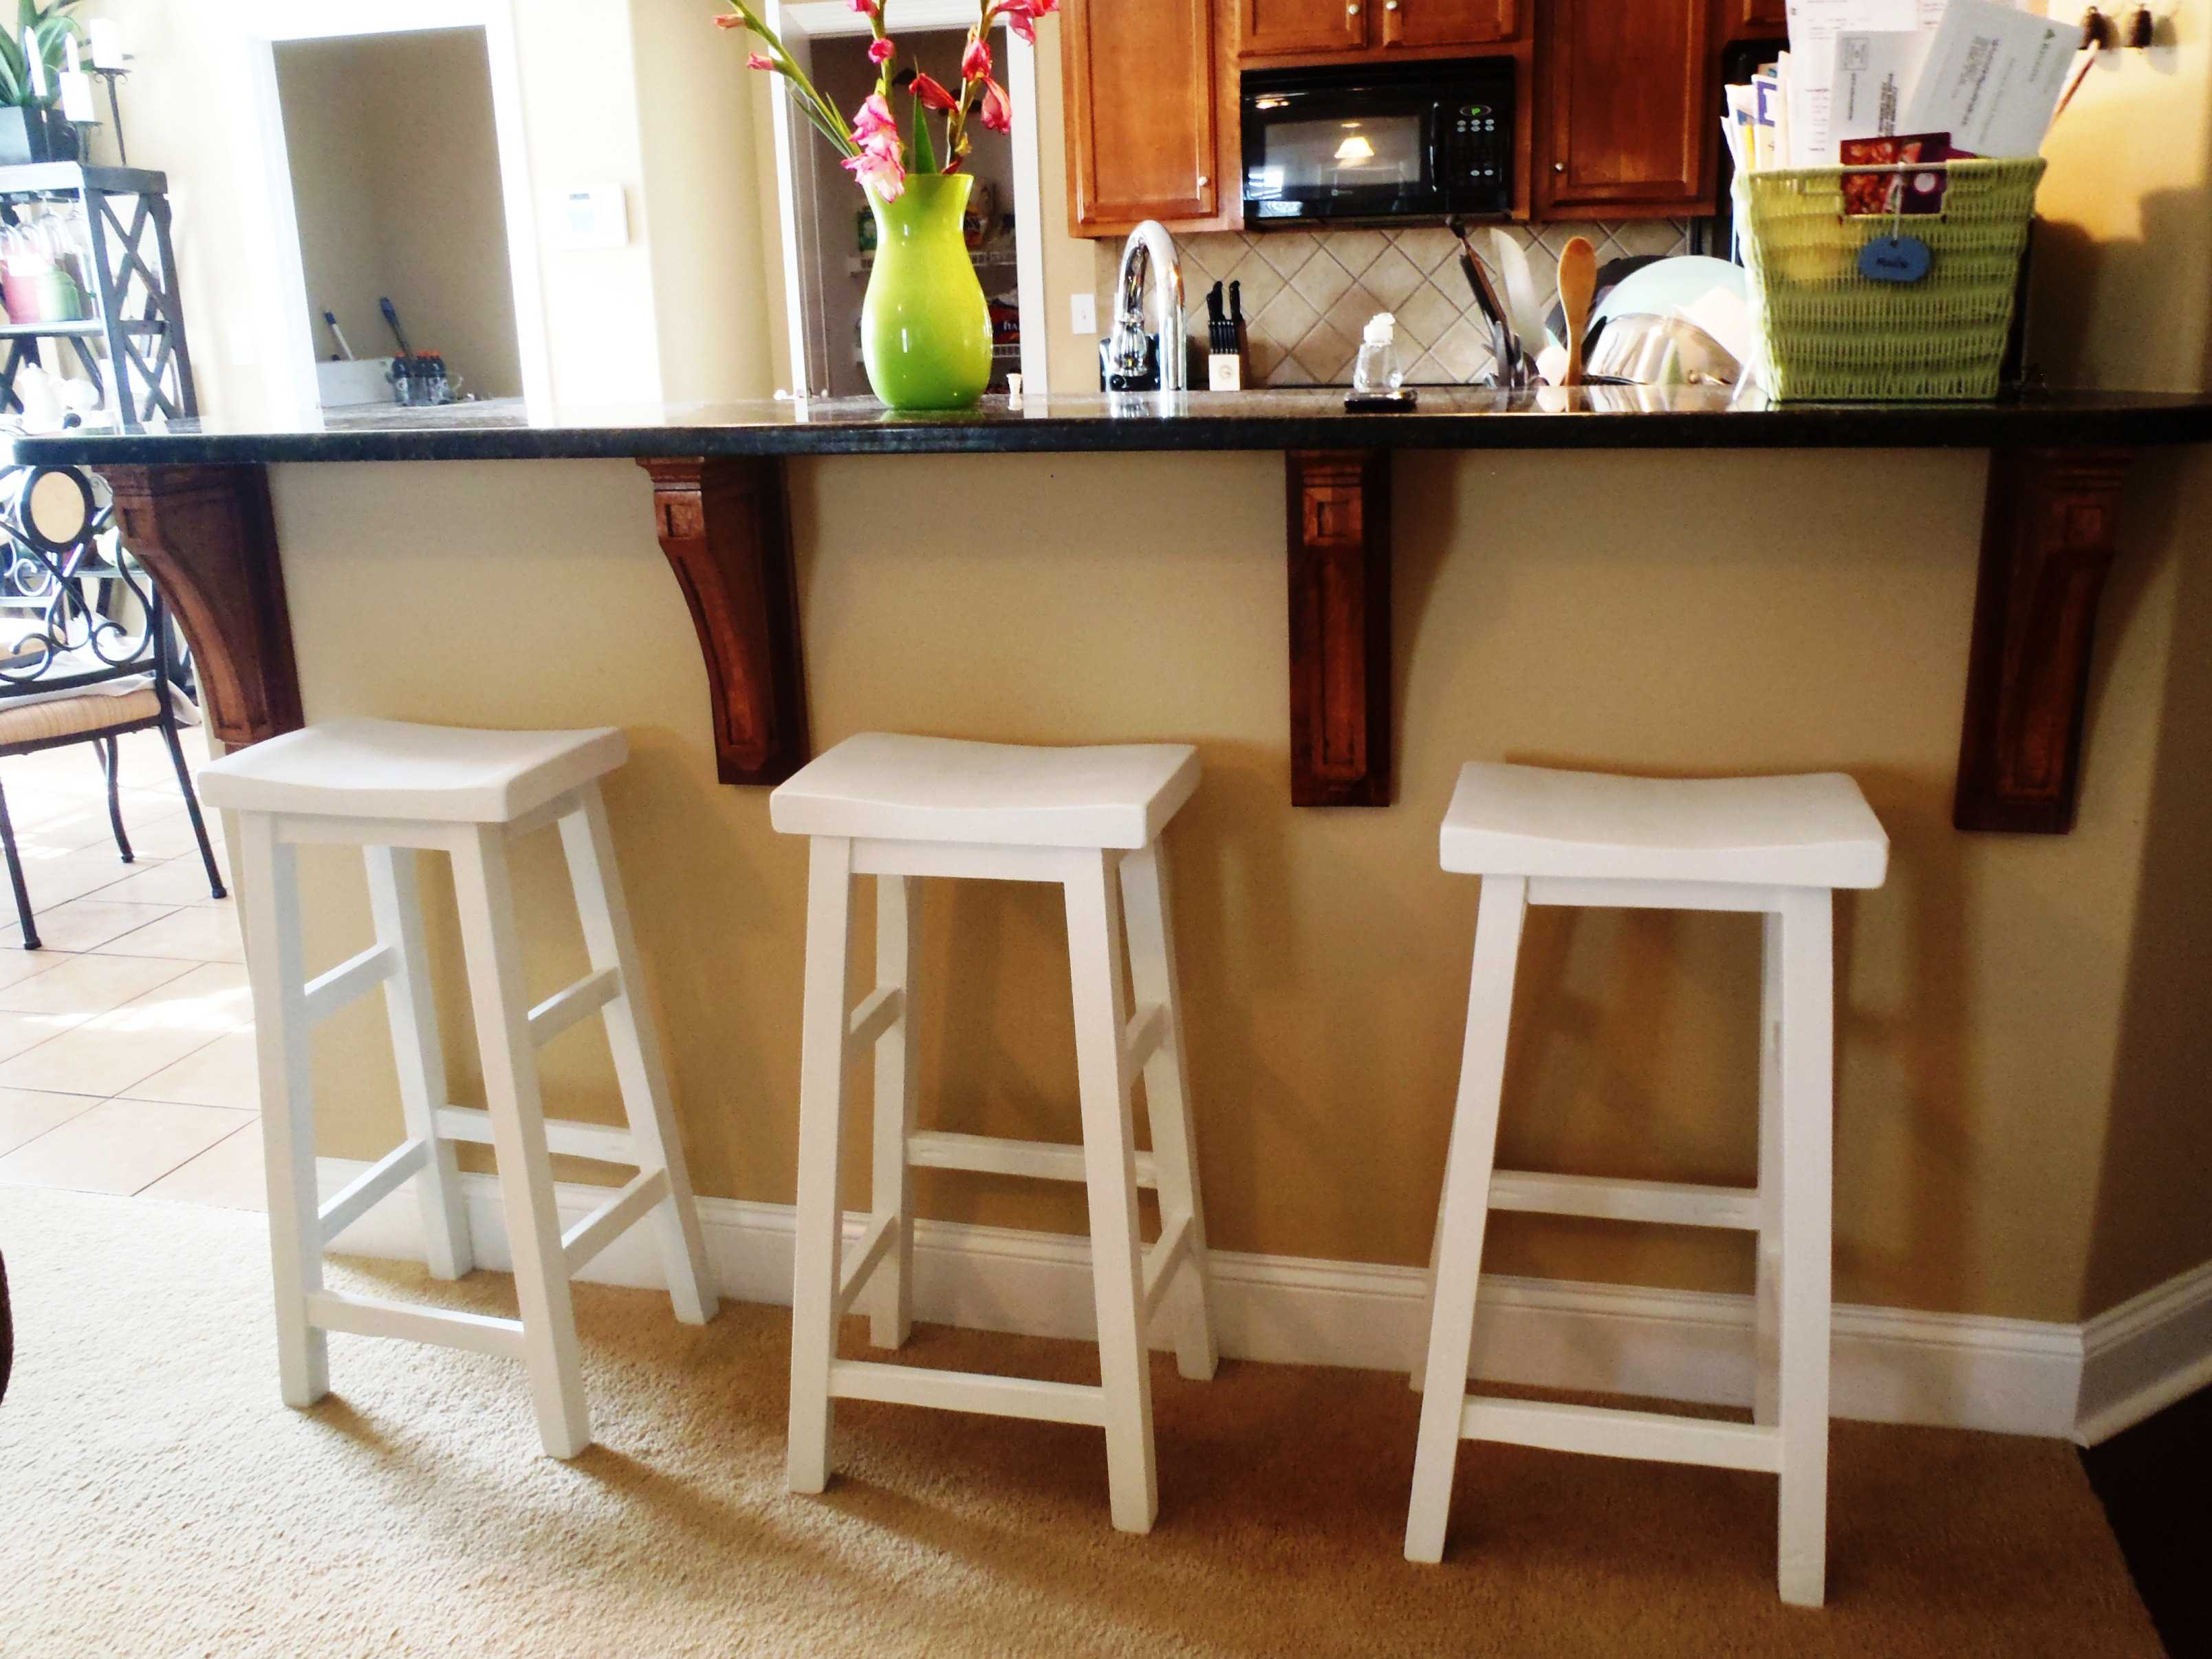 Bar And Stools For Home Trendy Furniture 14 Diy Bar Stool Ideas Style Motivation